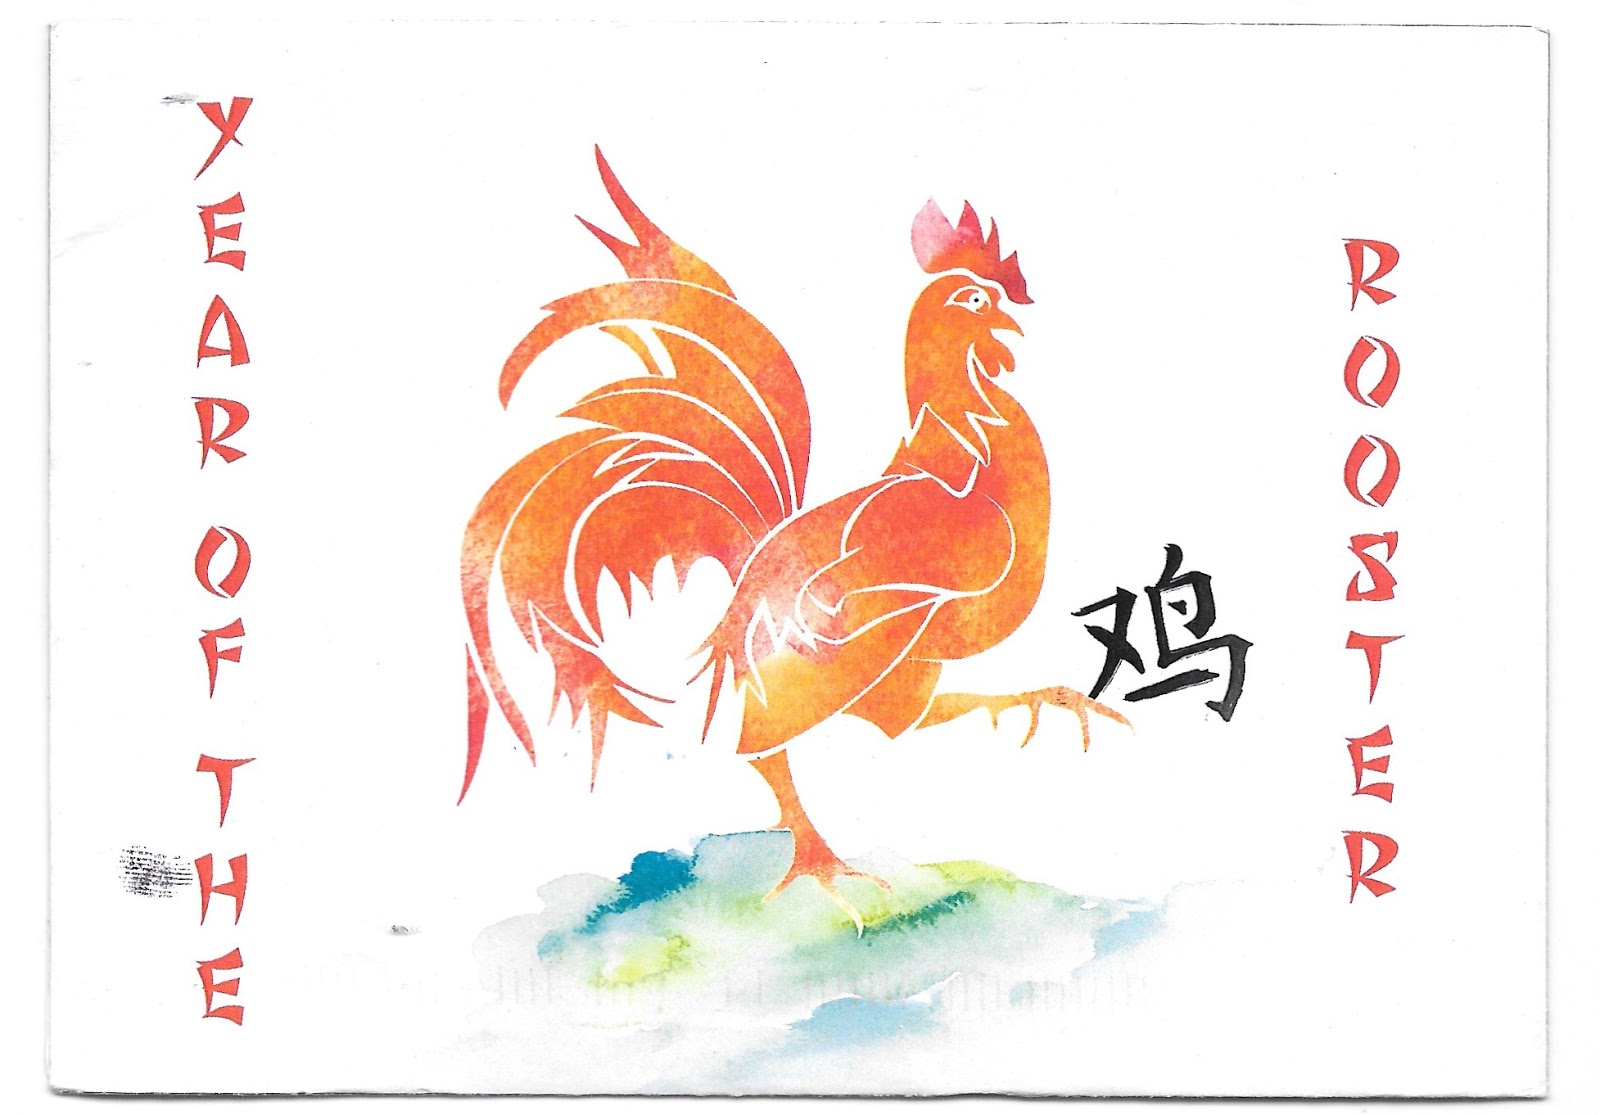 This Might Be A Stamp From Service Where You Choose The Images And Stamps Are Printed For Is Official La Poste Year Of Rooster